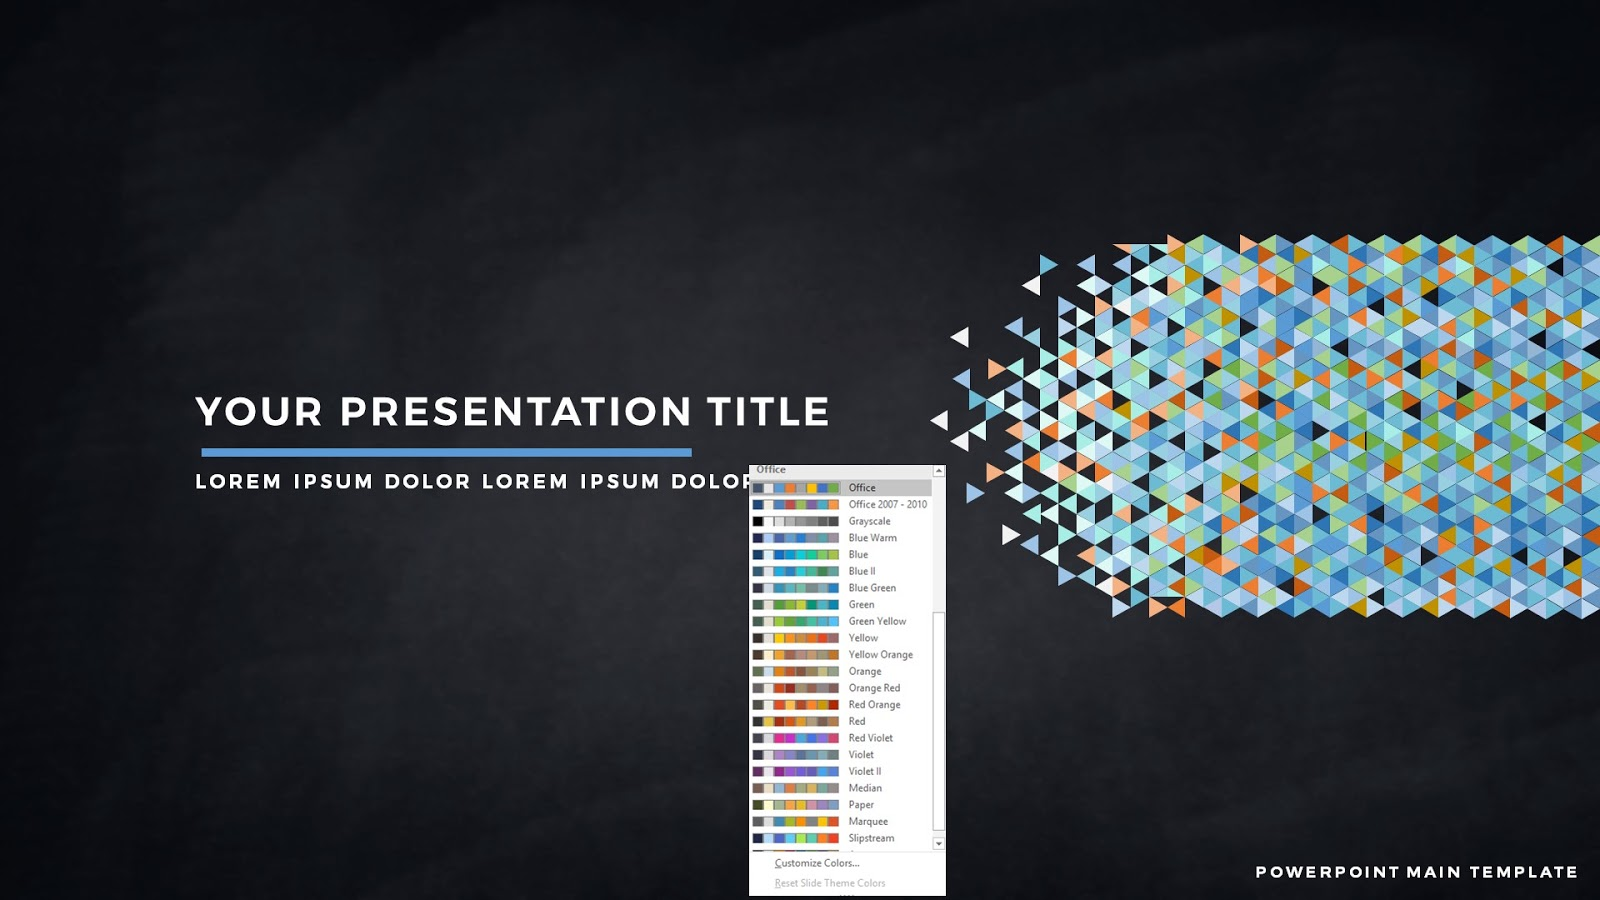 Free powerpoint template with polygonal presentation title polygonal presentation title background free powerpoint template with office default color scheme alramifo Images